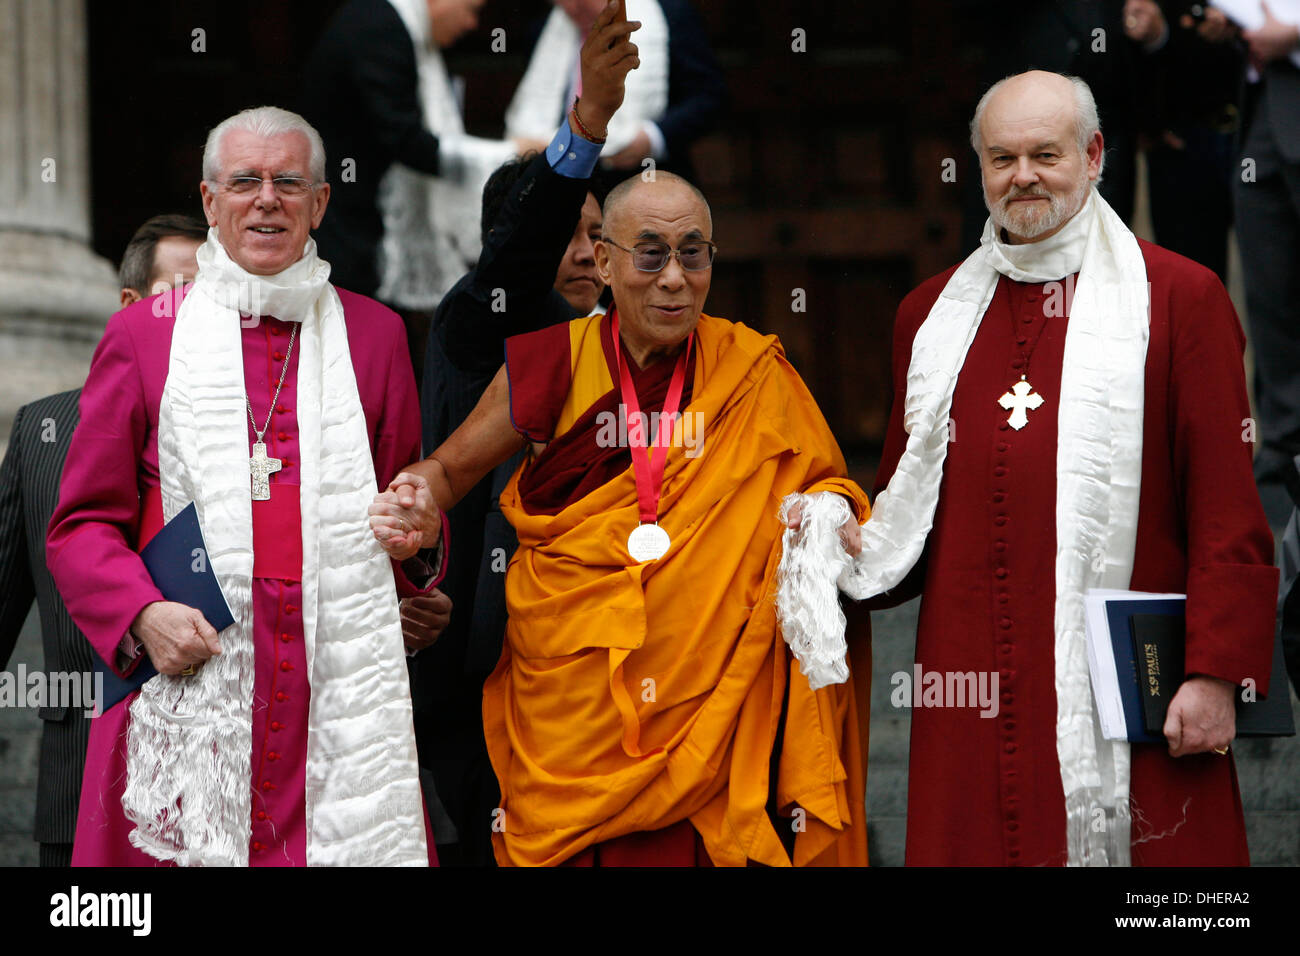 The 14th Dalai Lama (L) leaves with Richard Chartre the Bishop of London (R)  St. Paul s Cathedral, London 14 May 2012 - Stock Image